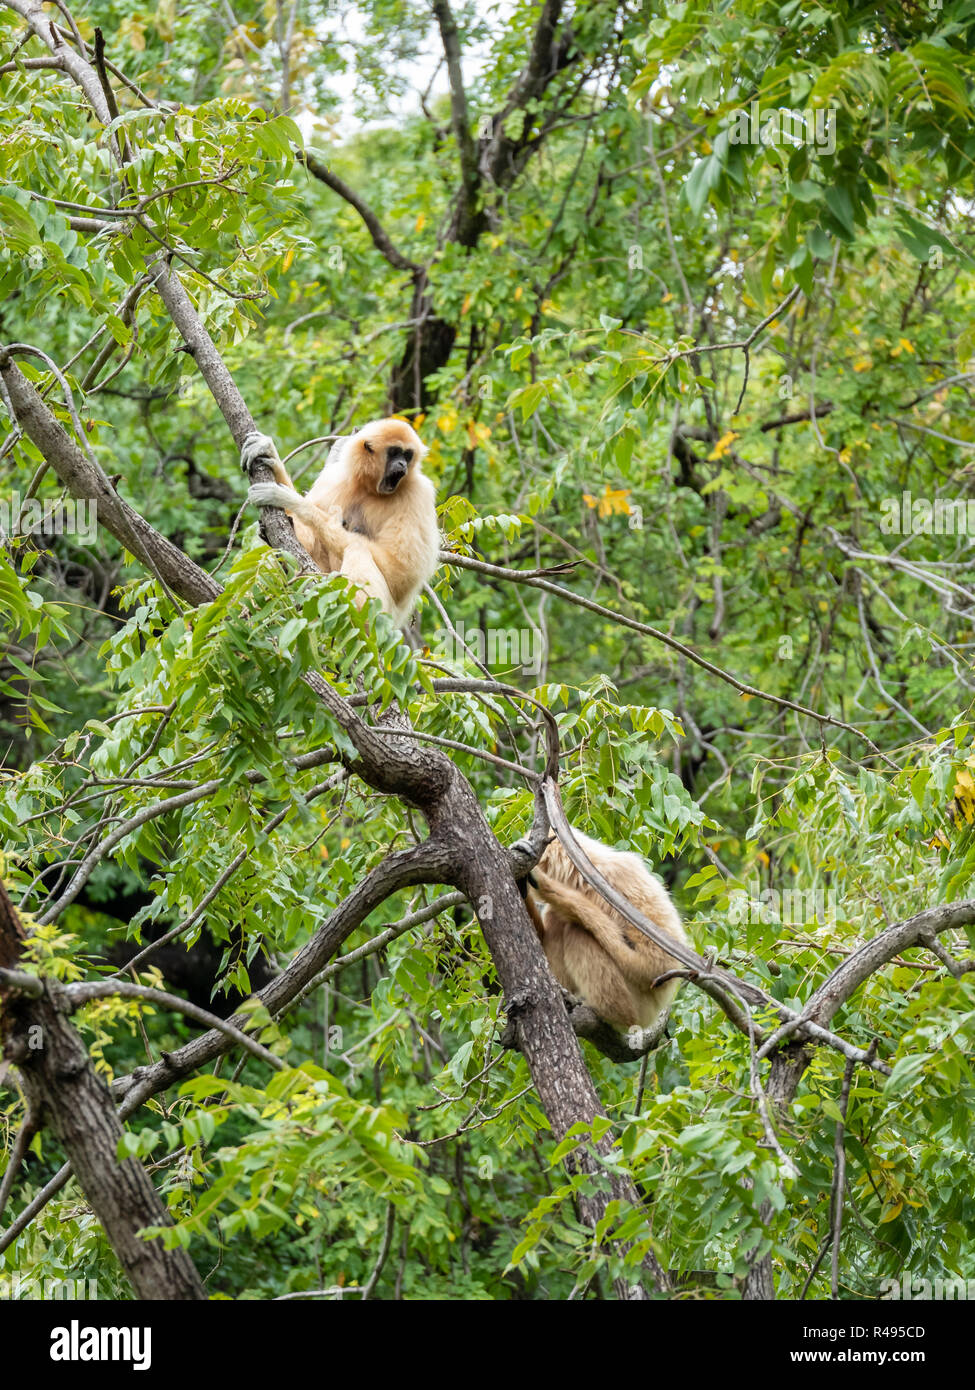 Two White Monkeys In a Tree In Bright Day - Stock Image